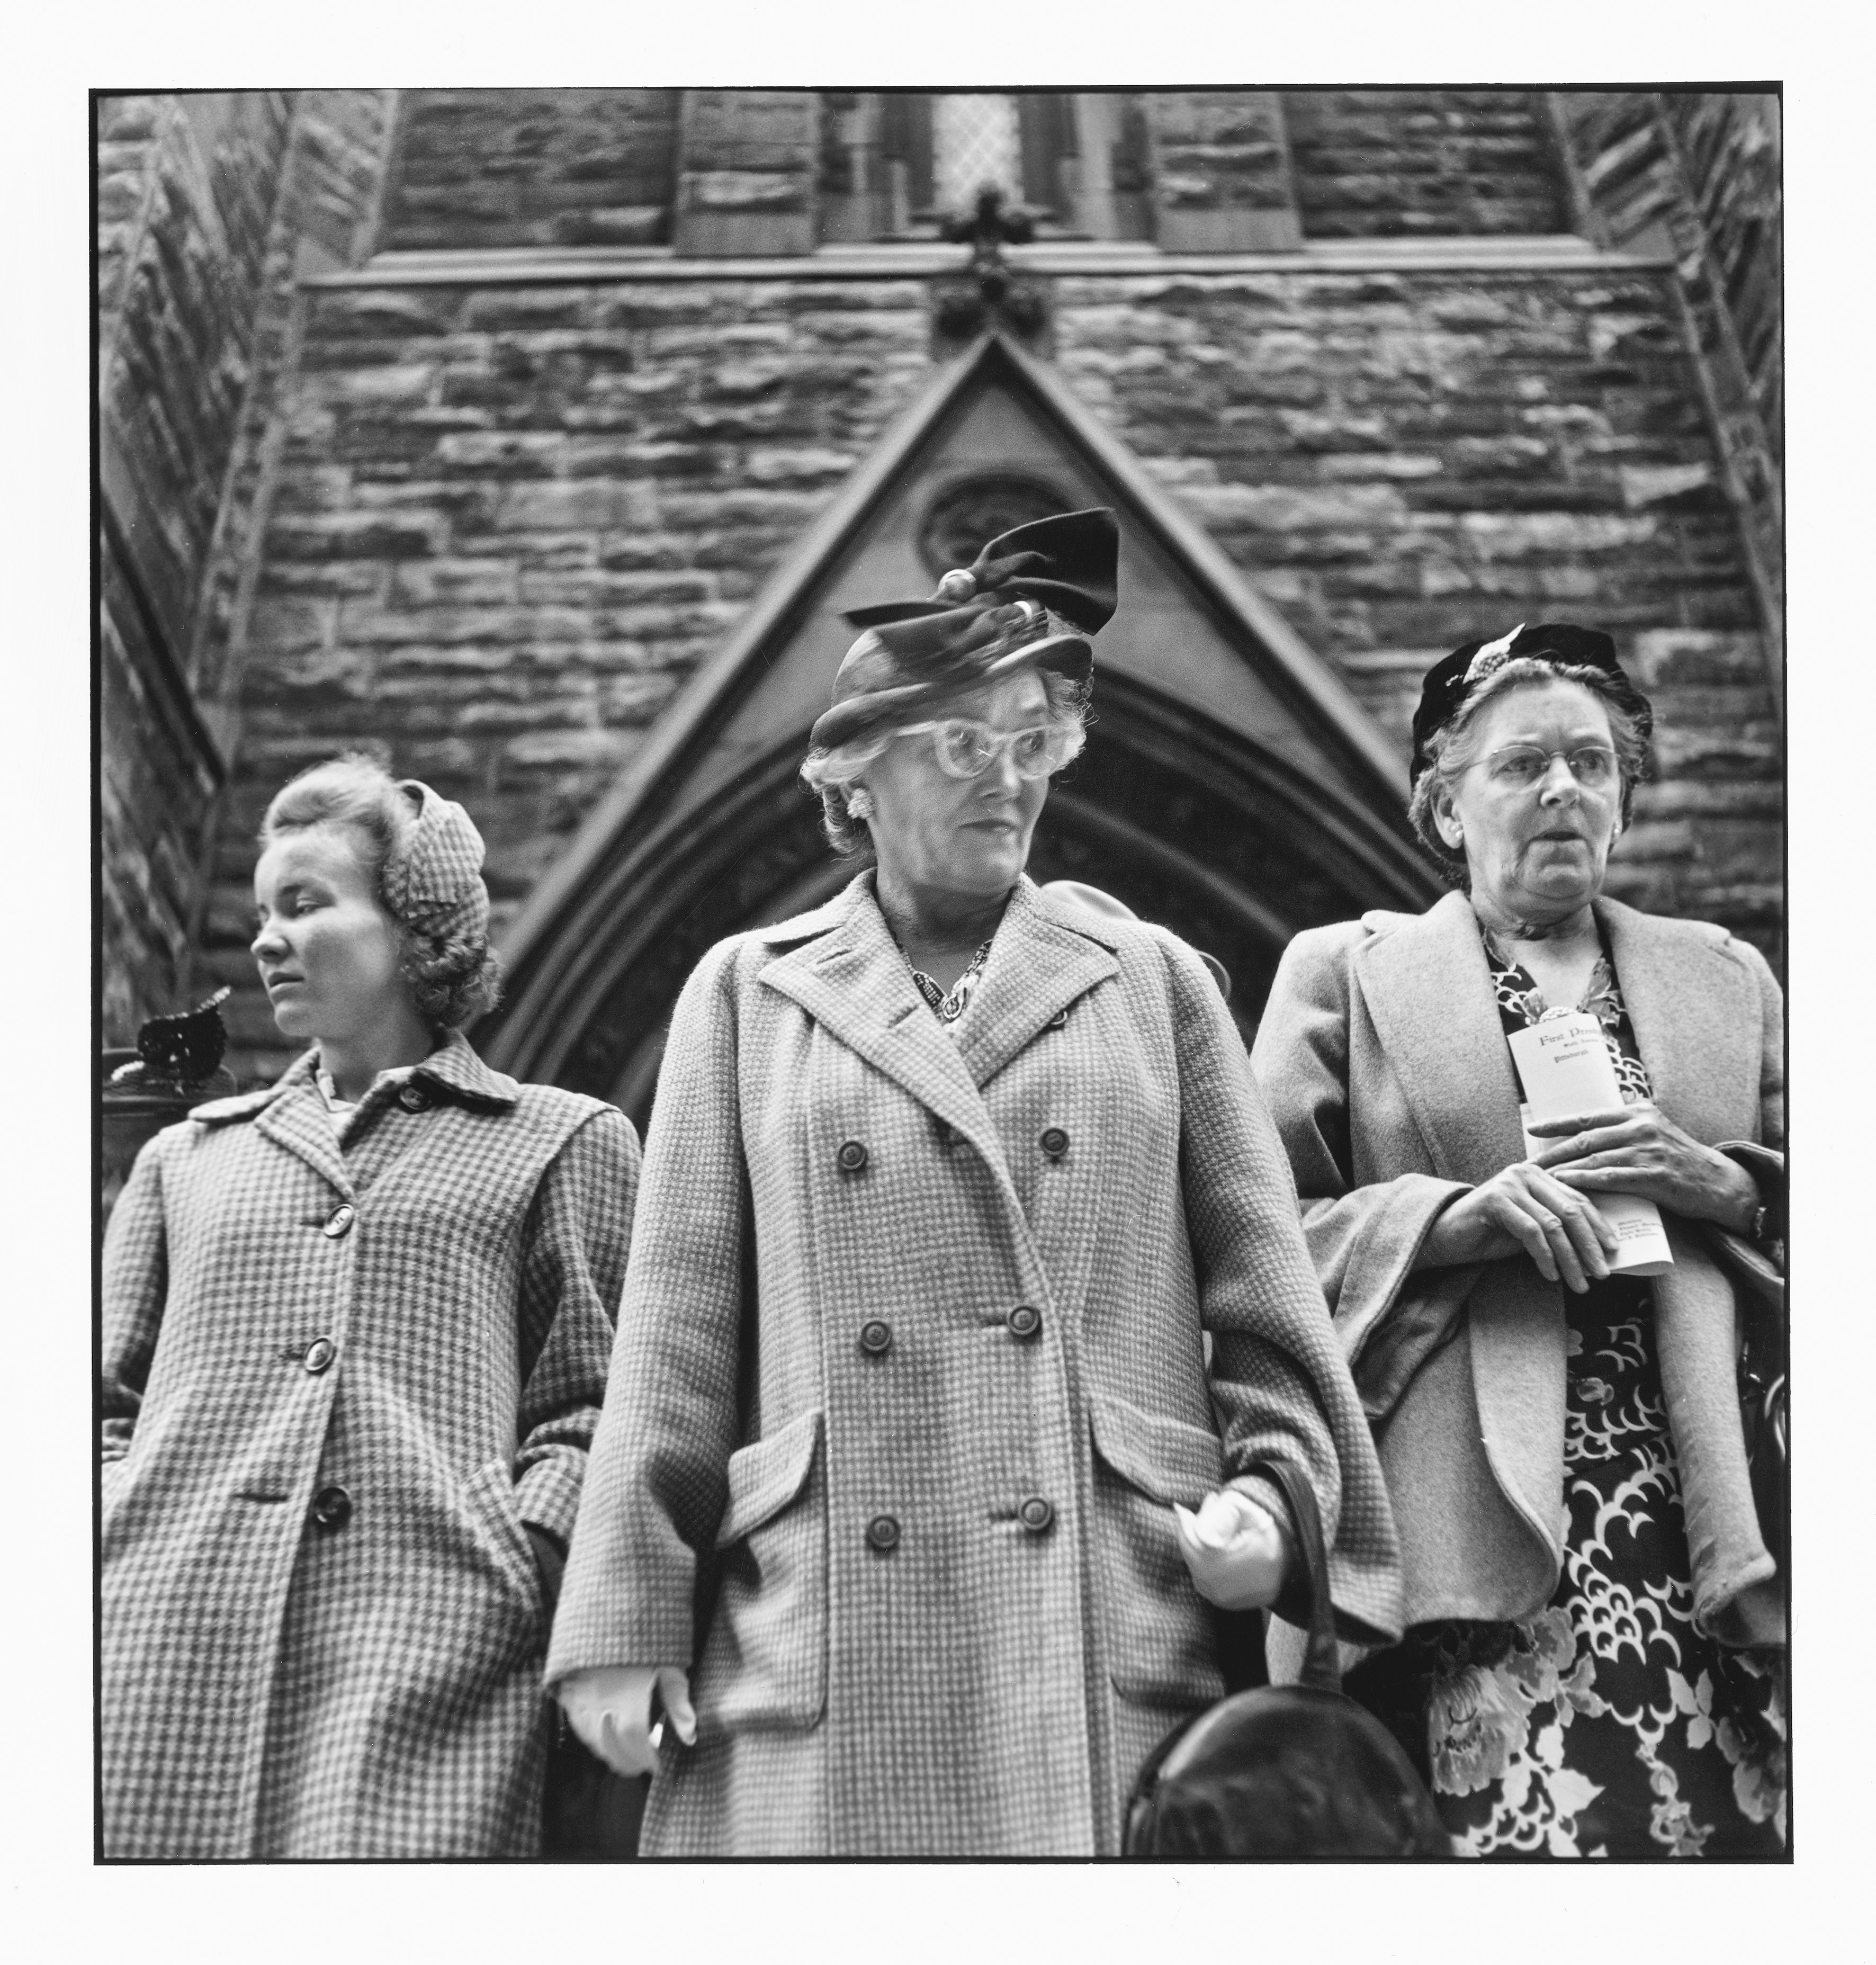 Outside Presbyterian Church on Sixth Avenue (© Elliott Erwitt / Magnum Photos Courtesy: Carnegie Library of Pittsburgh)